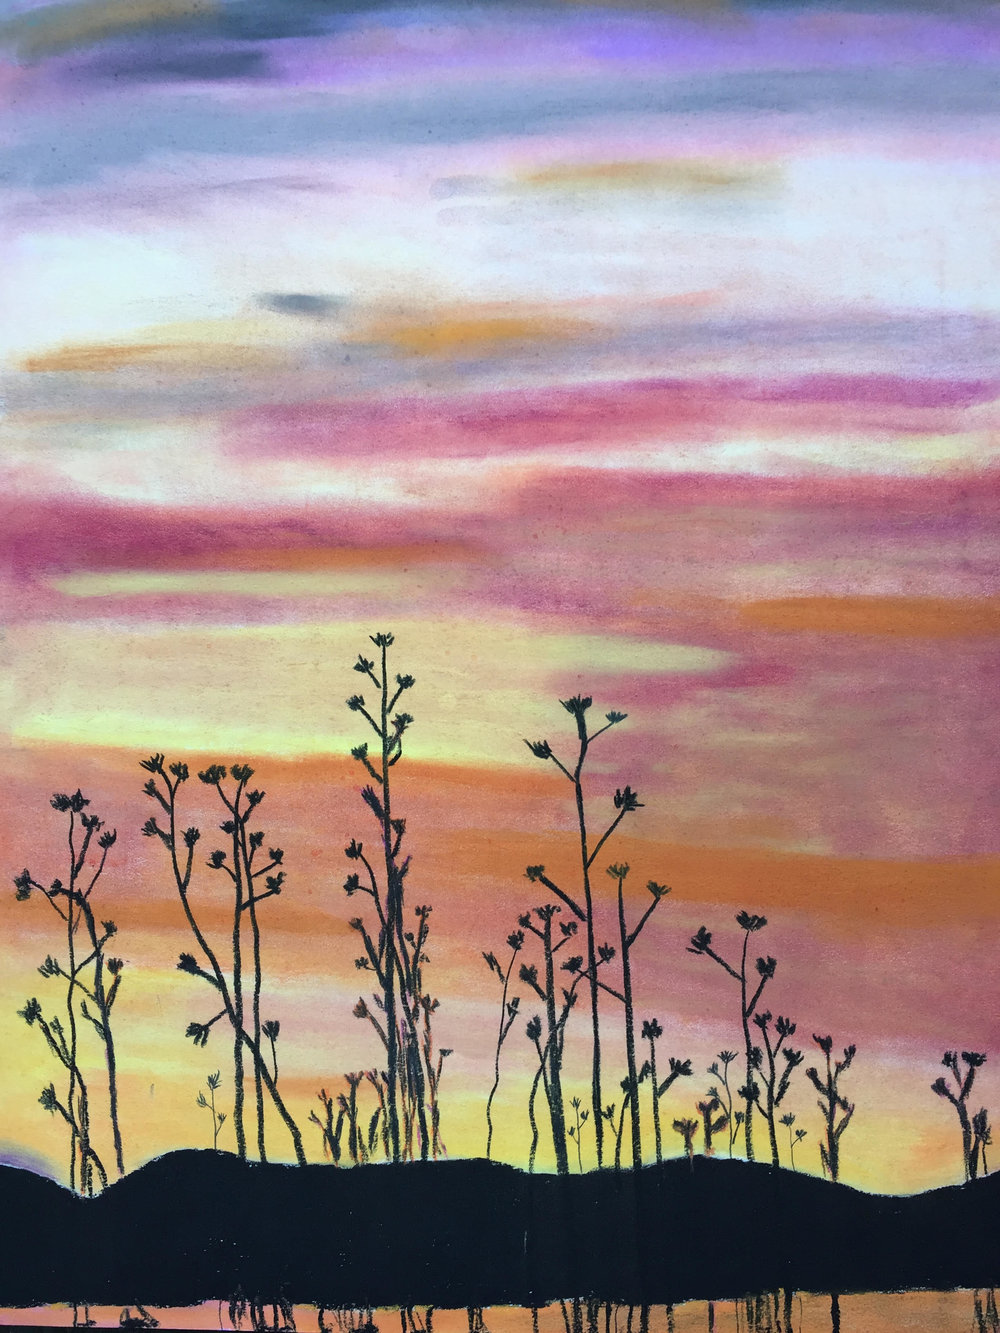 Weeds against the sunset.jpg